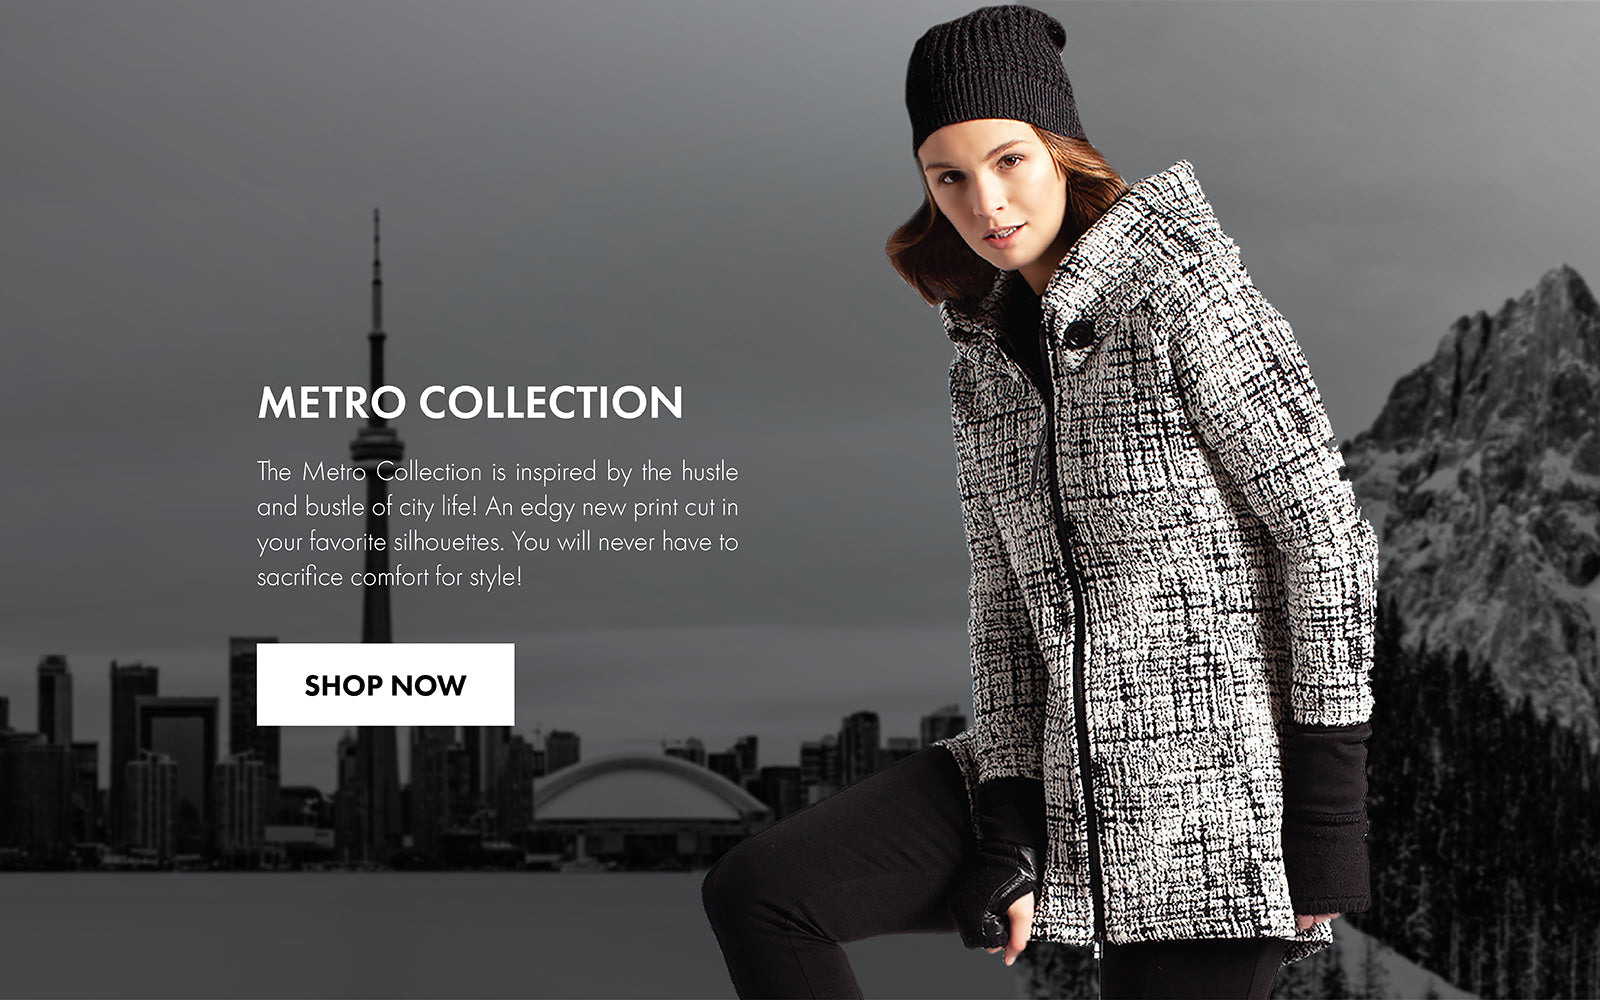 The Metro Collection is inspired by the hustle and bustle of city life! An edgy new print cut in your favorite silhouettes. You will never have to sacrifice comfort for style! Perfect clothing ranging from jackets, coats, Leggings and more.